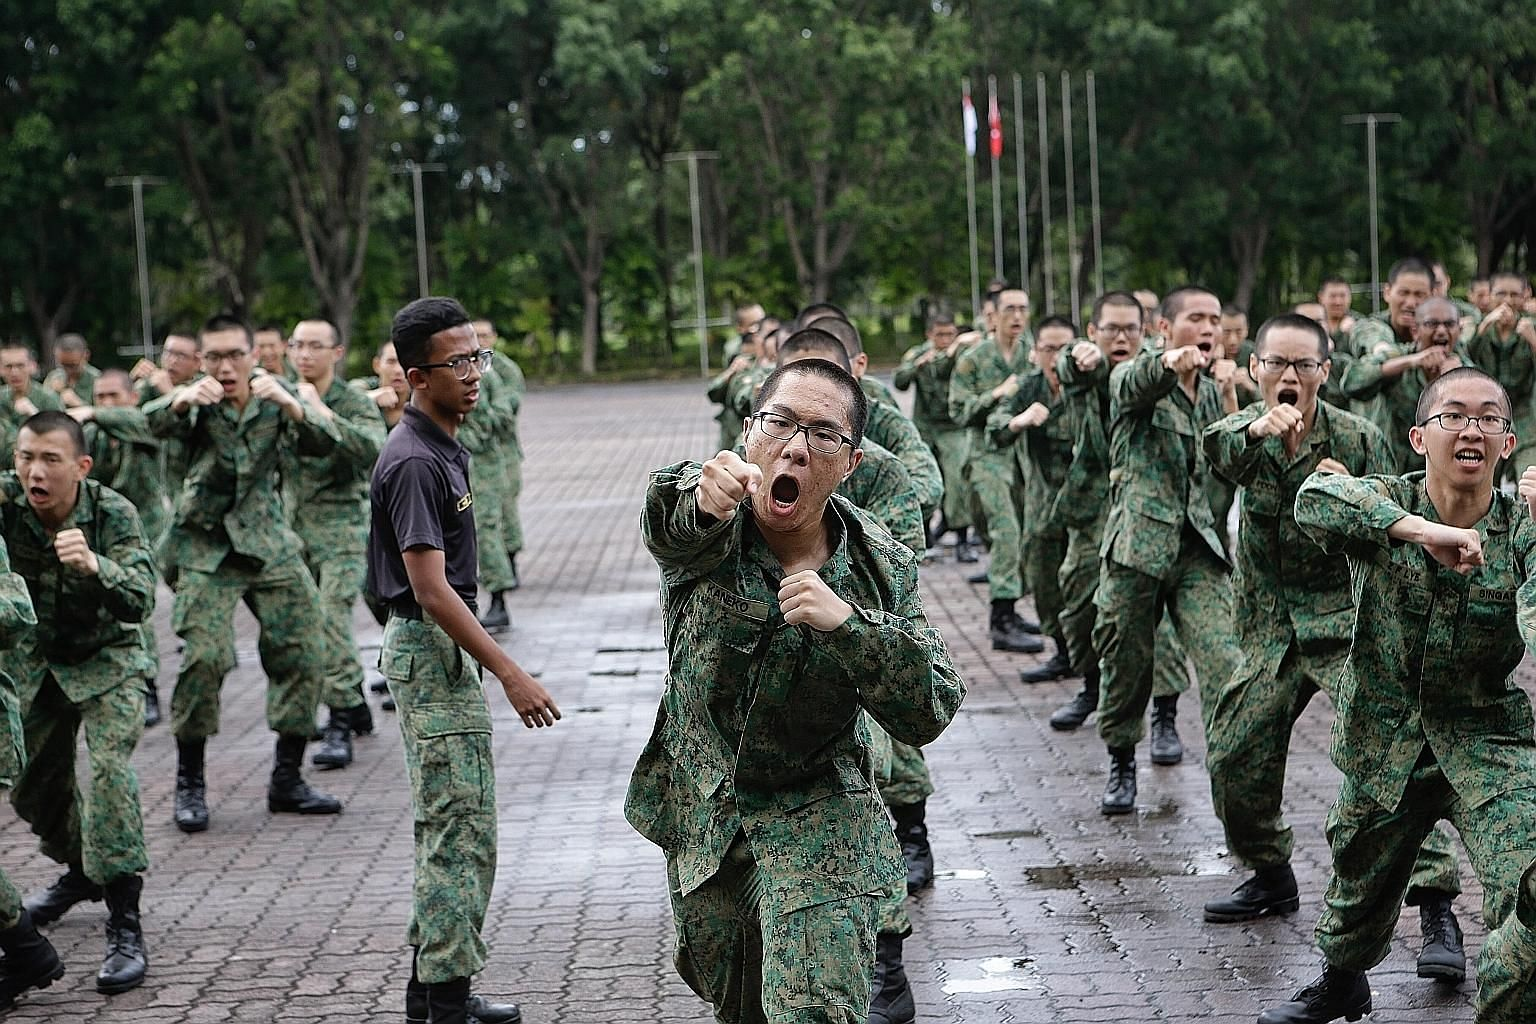 The Enlistment Act applies to all male citizens and PRs aged from 16½ to 40. Mindef said writer Kevin Kwan failed to register for NS in 1990.